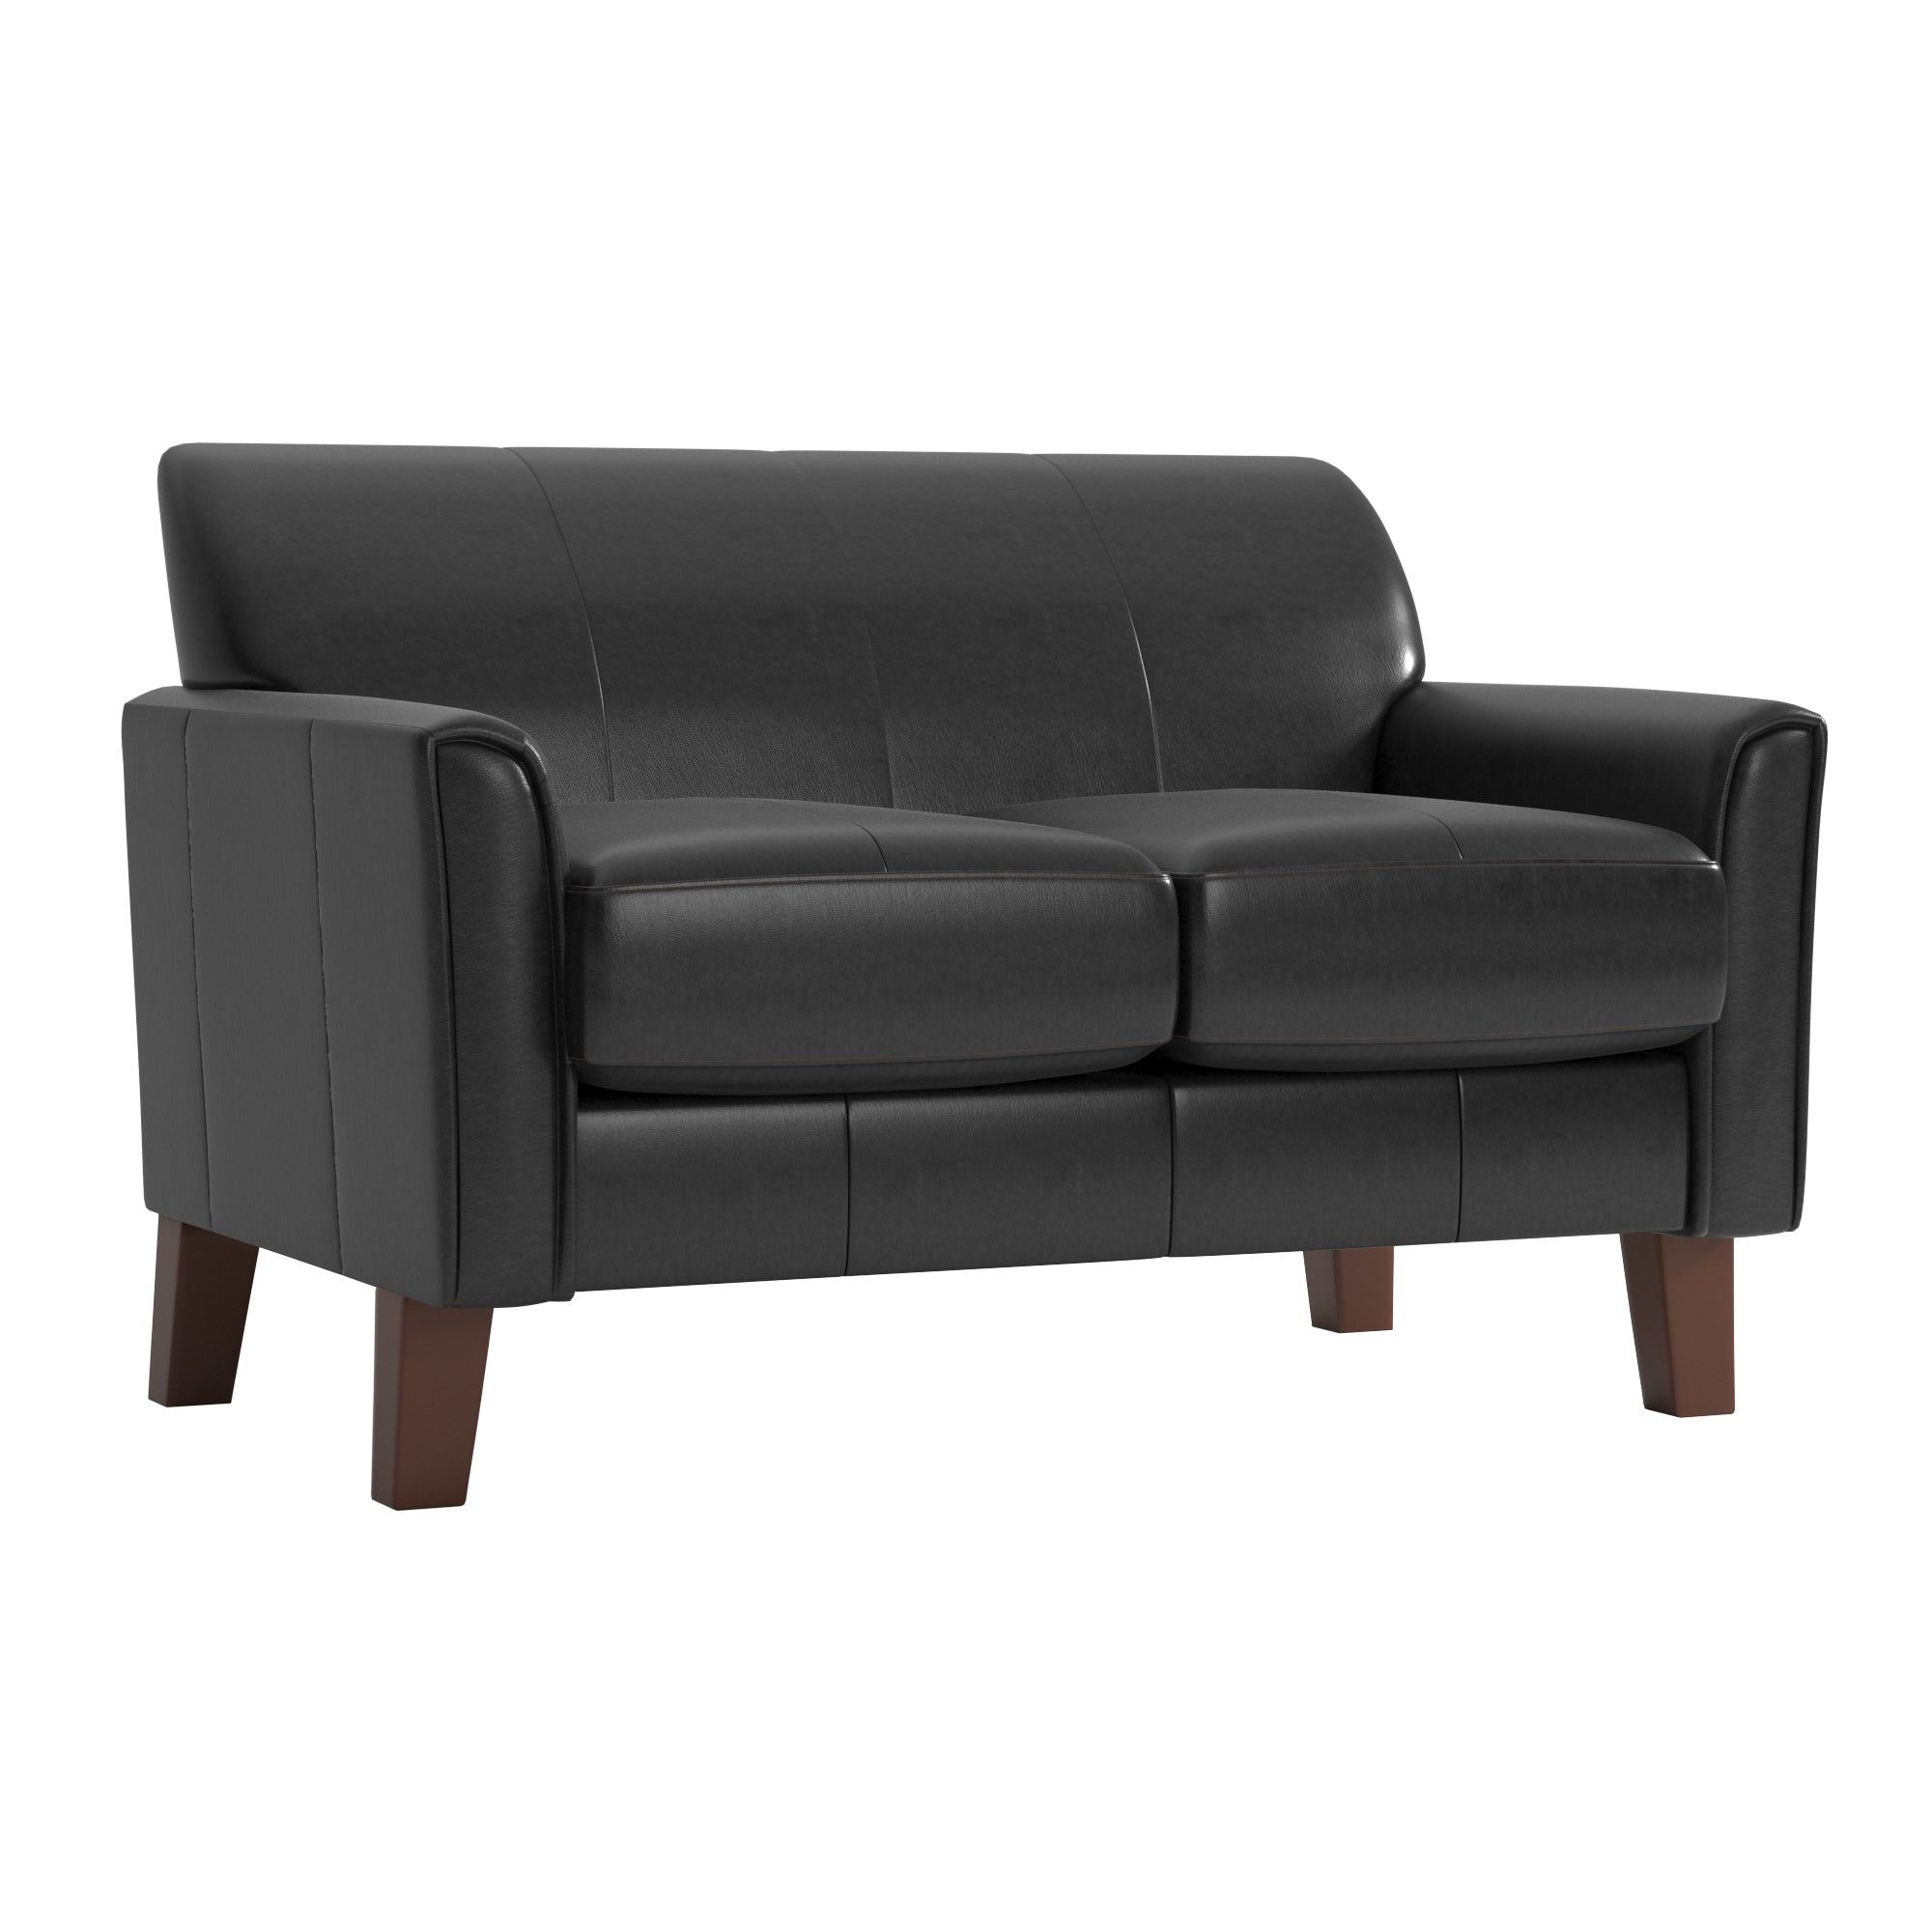 Modern Loveseat - Dark Brown Faux Leather, Cherry Finish